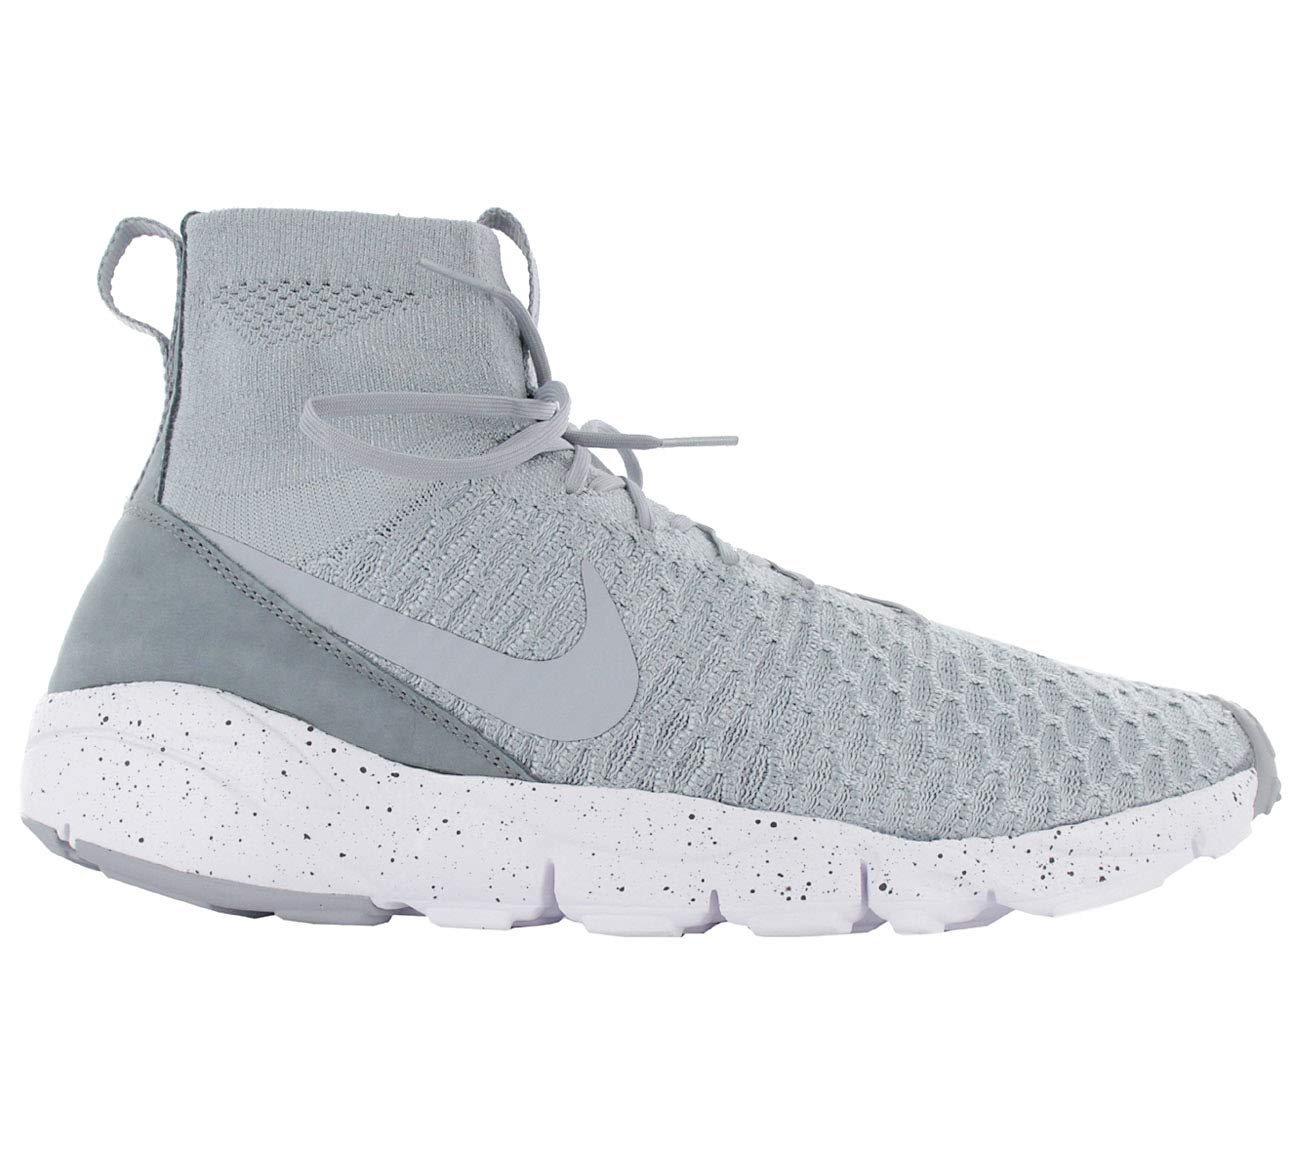 magista chez nike air footscape 10 flyknit formateurs 816560 chaussures chaussures (uk 9 10 footscape ue 44, le loup gris hyper - orange - 005) cdd9a1